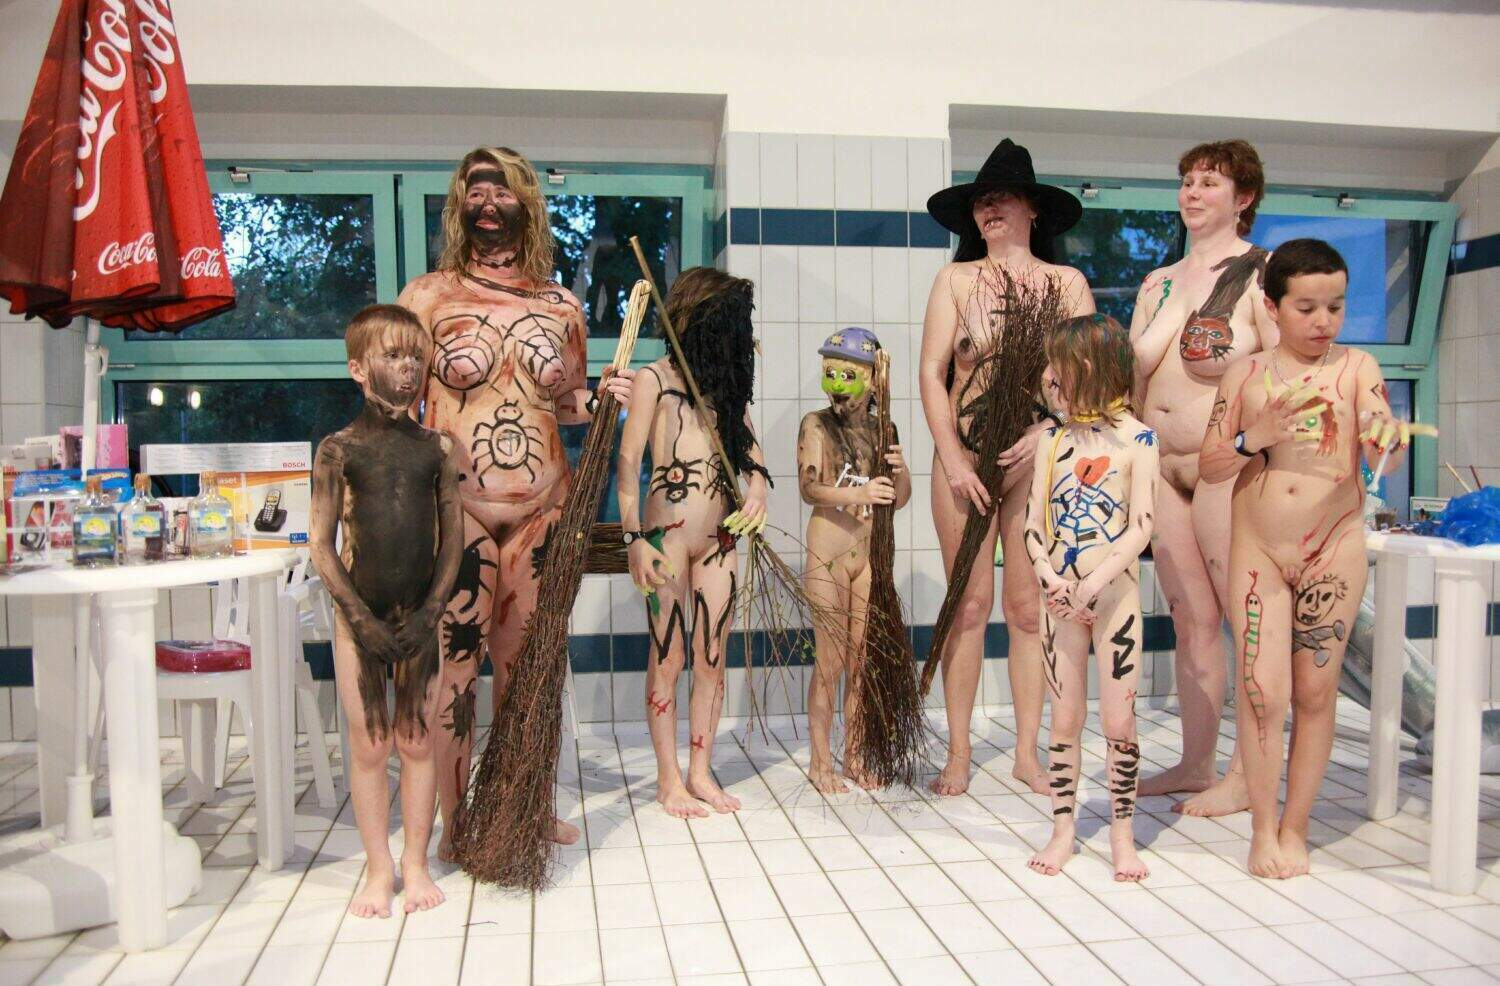 NEW Halloween Pool Party-Naturist Family Events Pictures [Purenudism 2014]